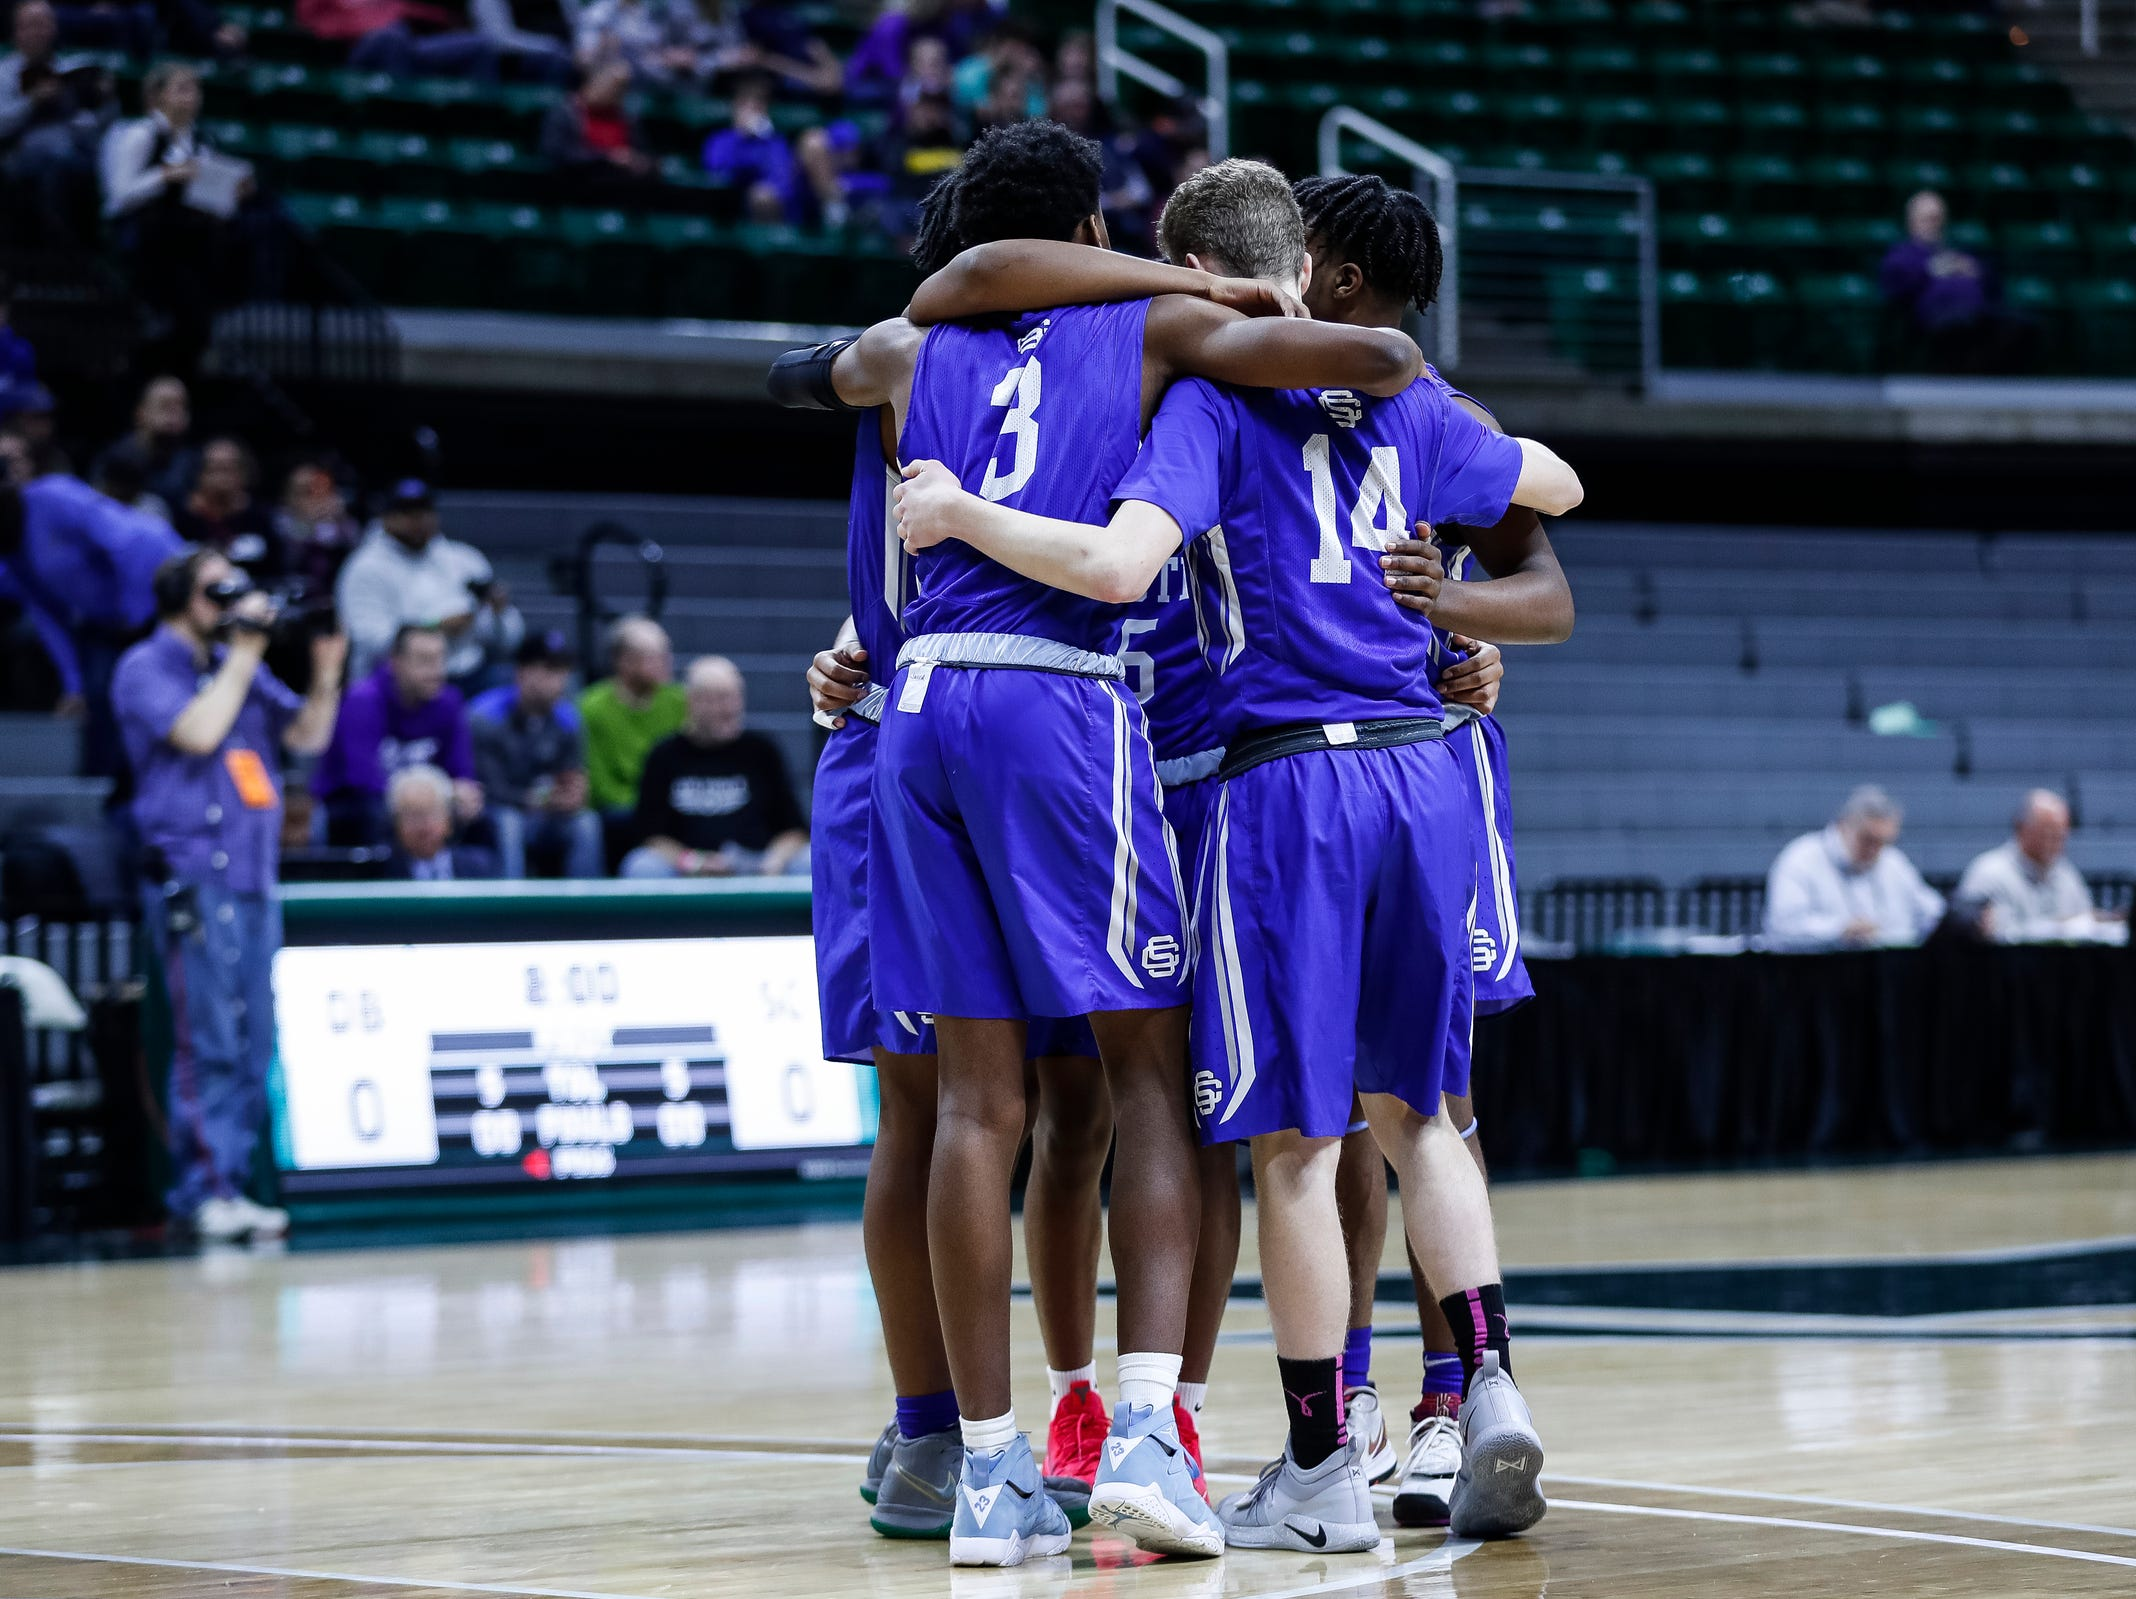 Southfield Christian players huddle before the first half of MHSAA Division 4 semifinal against Dollar Bay at the Breslin Center in East Lansing, Thursday, March 14, 2019.